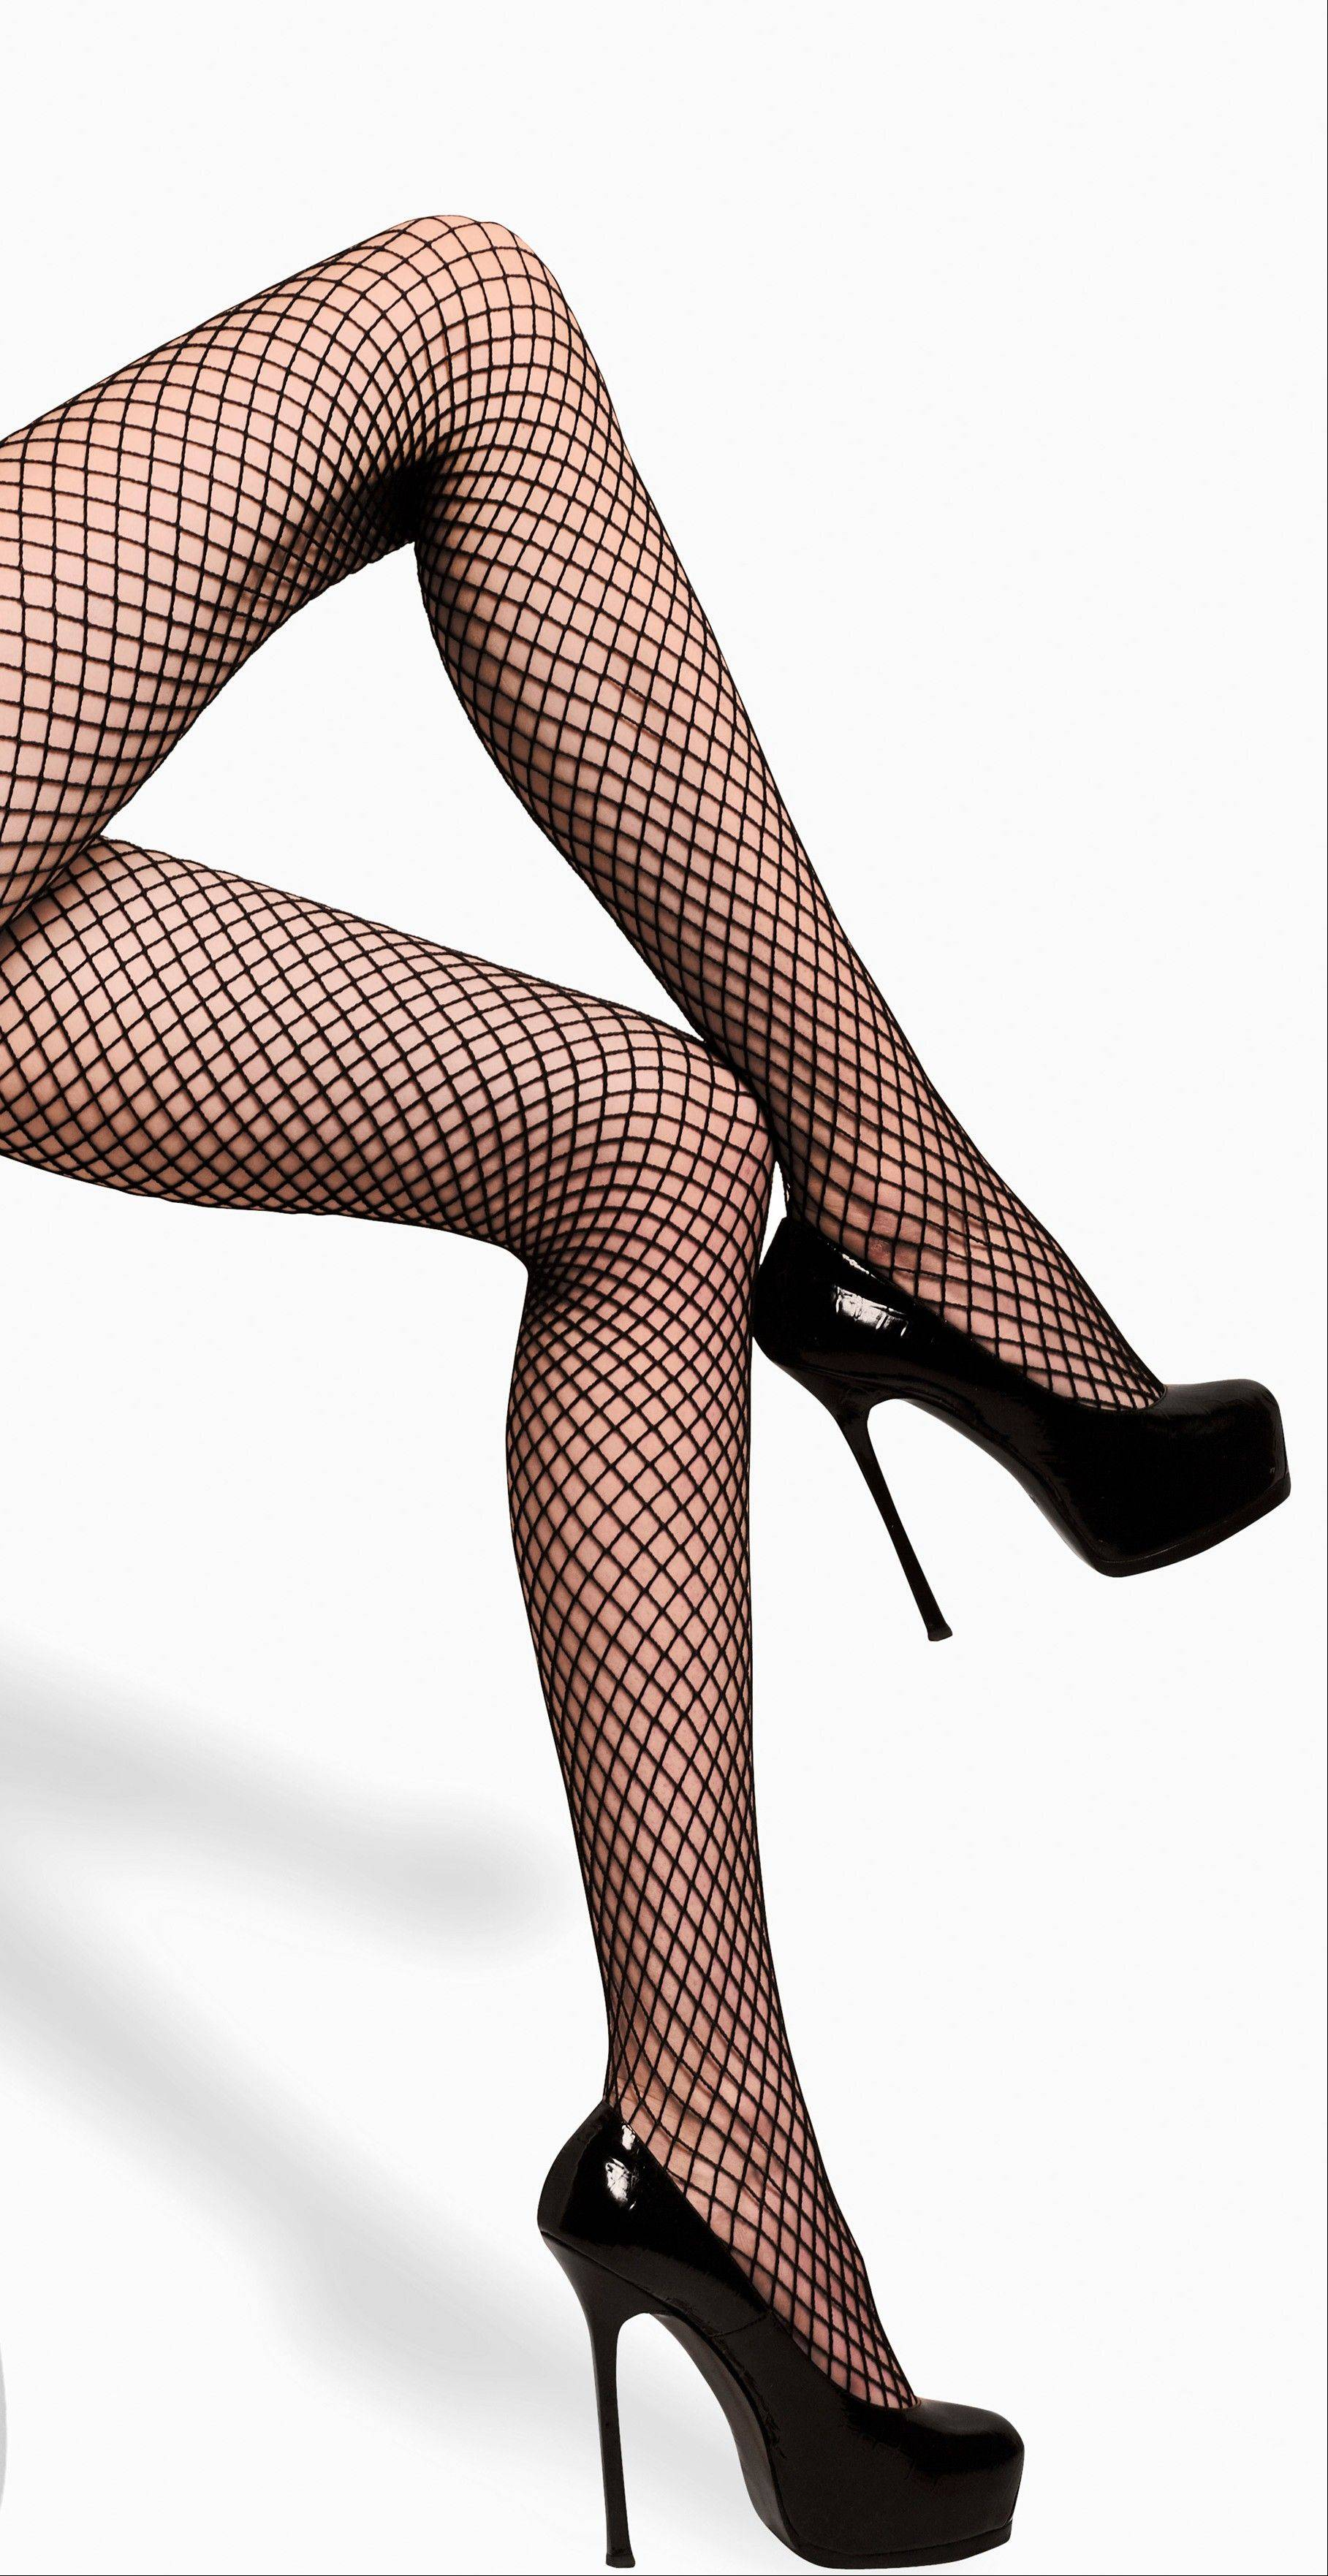 Since the heyday of the 1980s, there's been a casual revolution, a revolt against covered-but-sheer legs. Now hosiery is making its comeback.